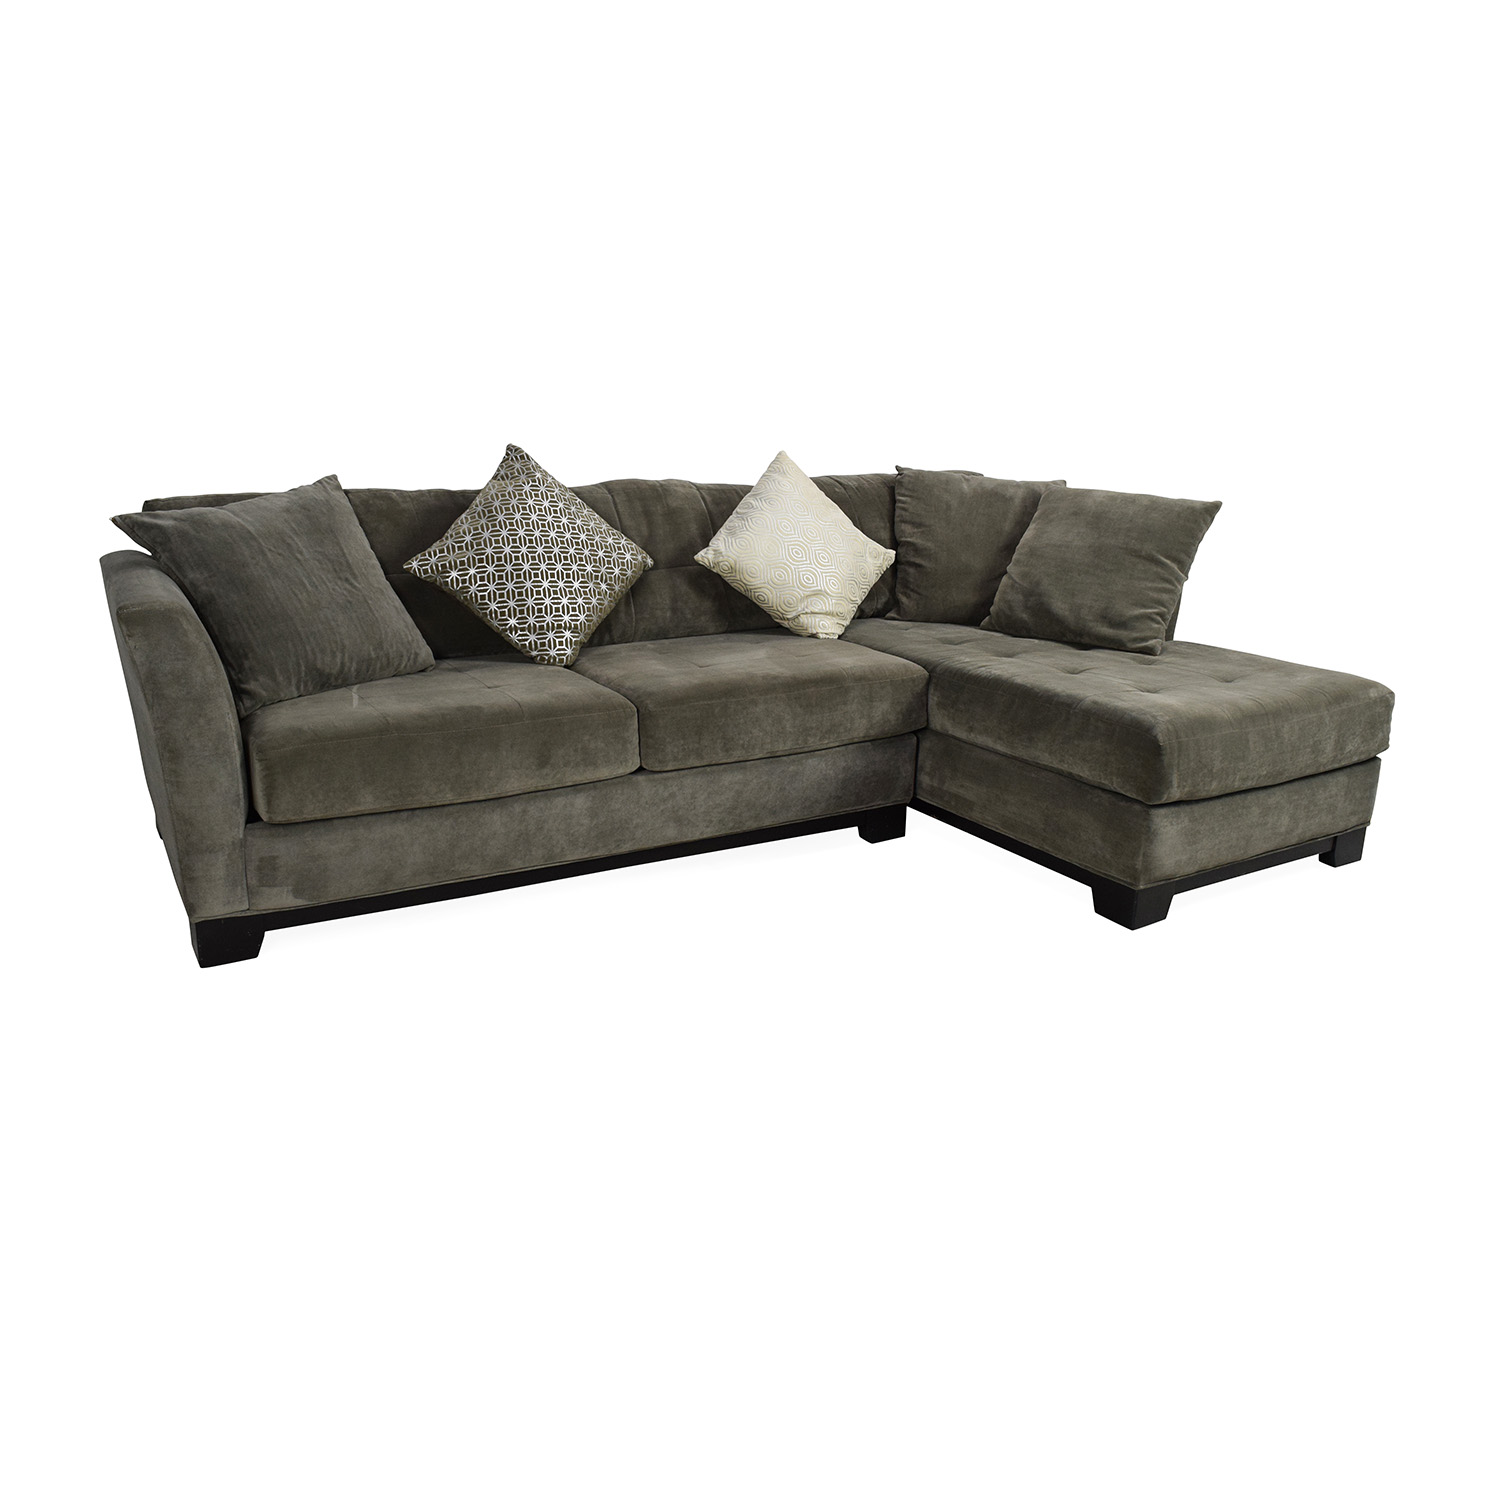 50 Off Macy S Macy S Gray Sectional Couch With Chaise